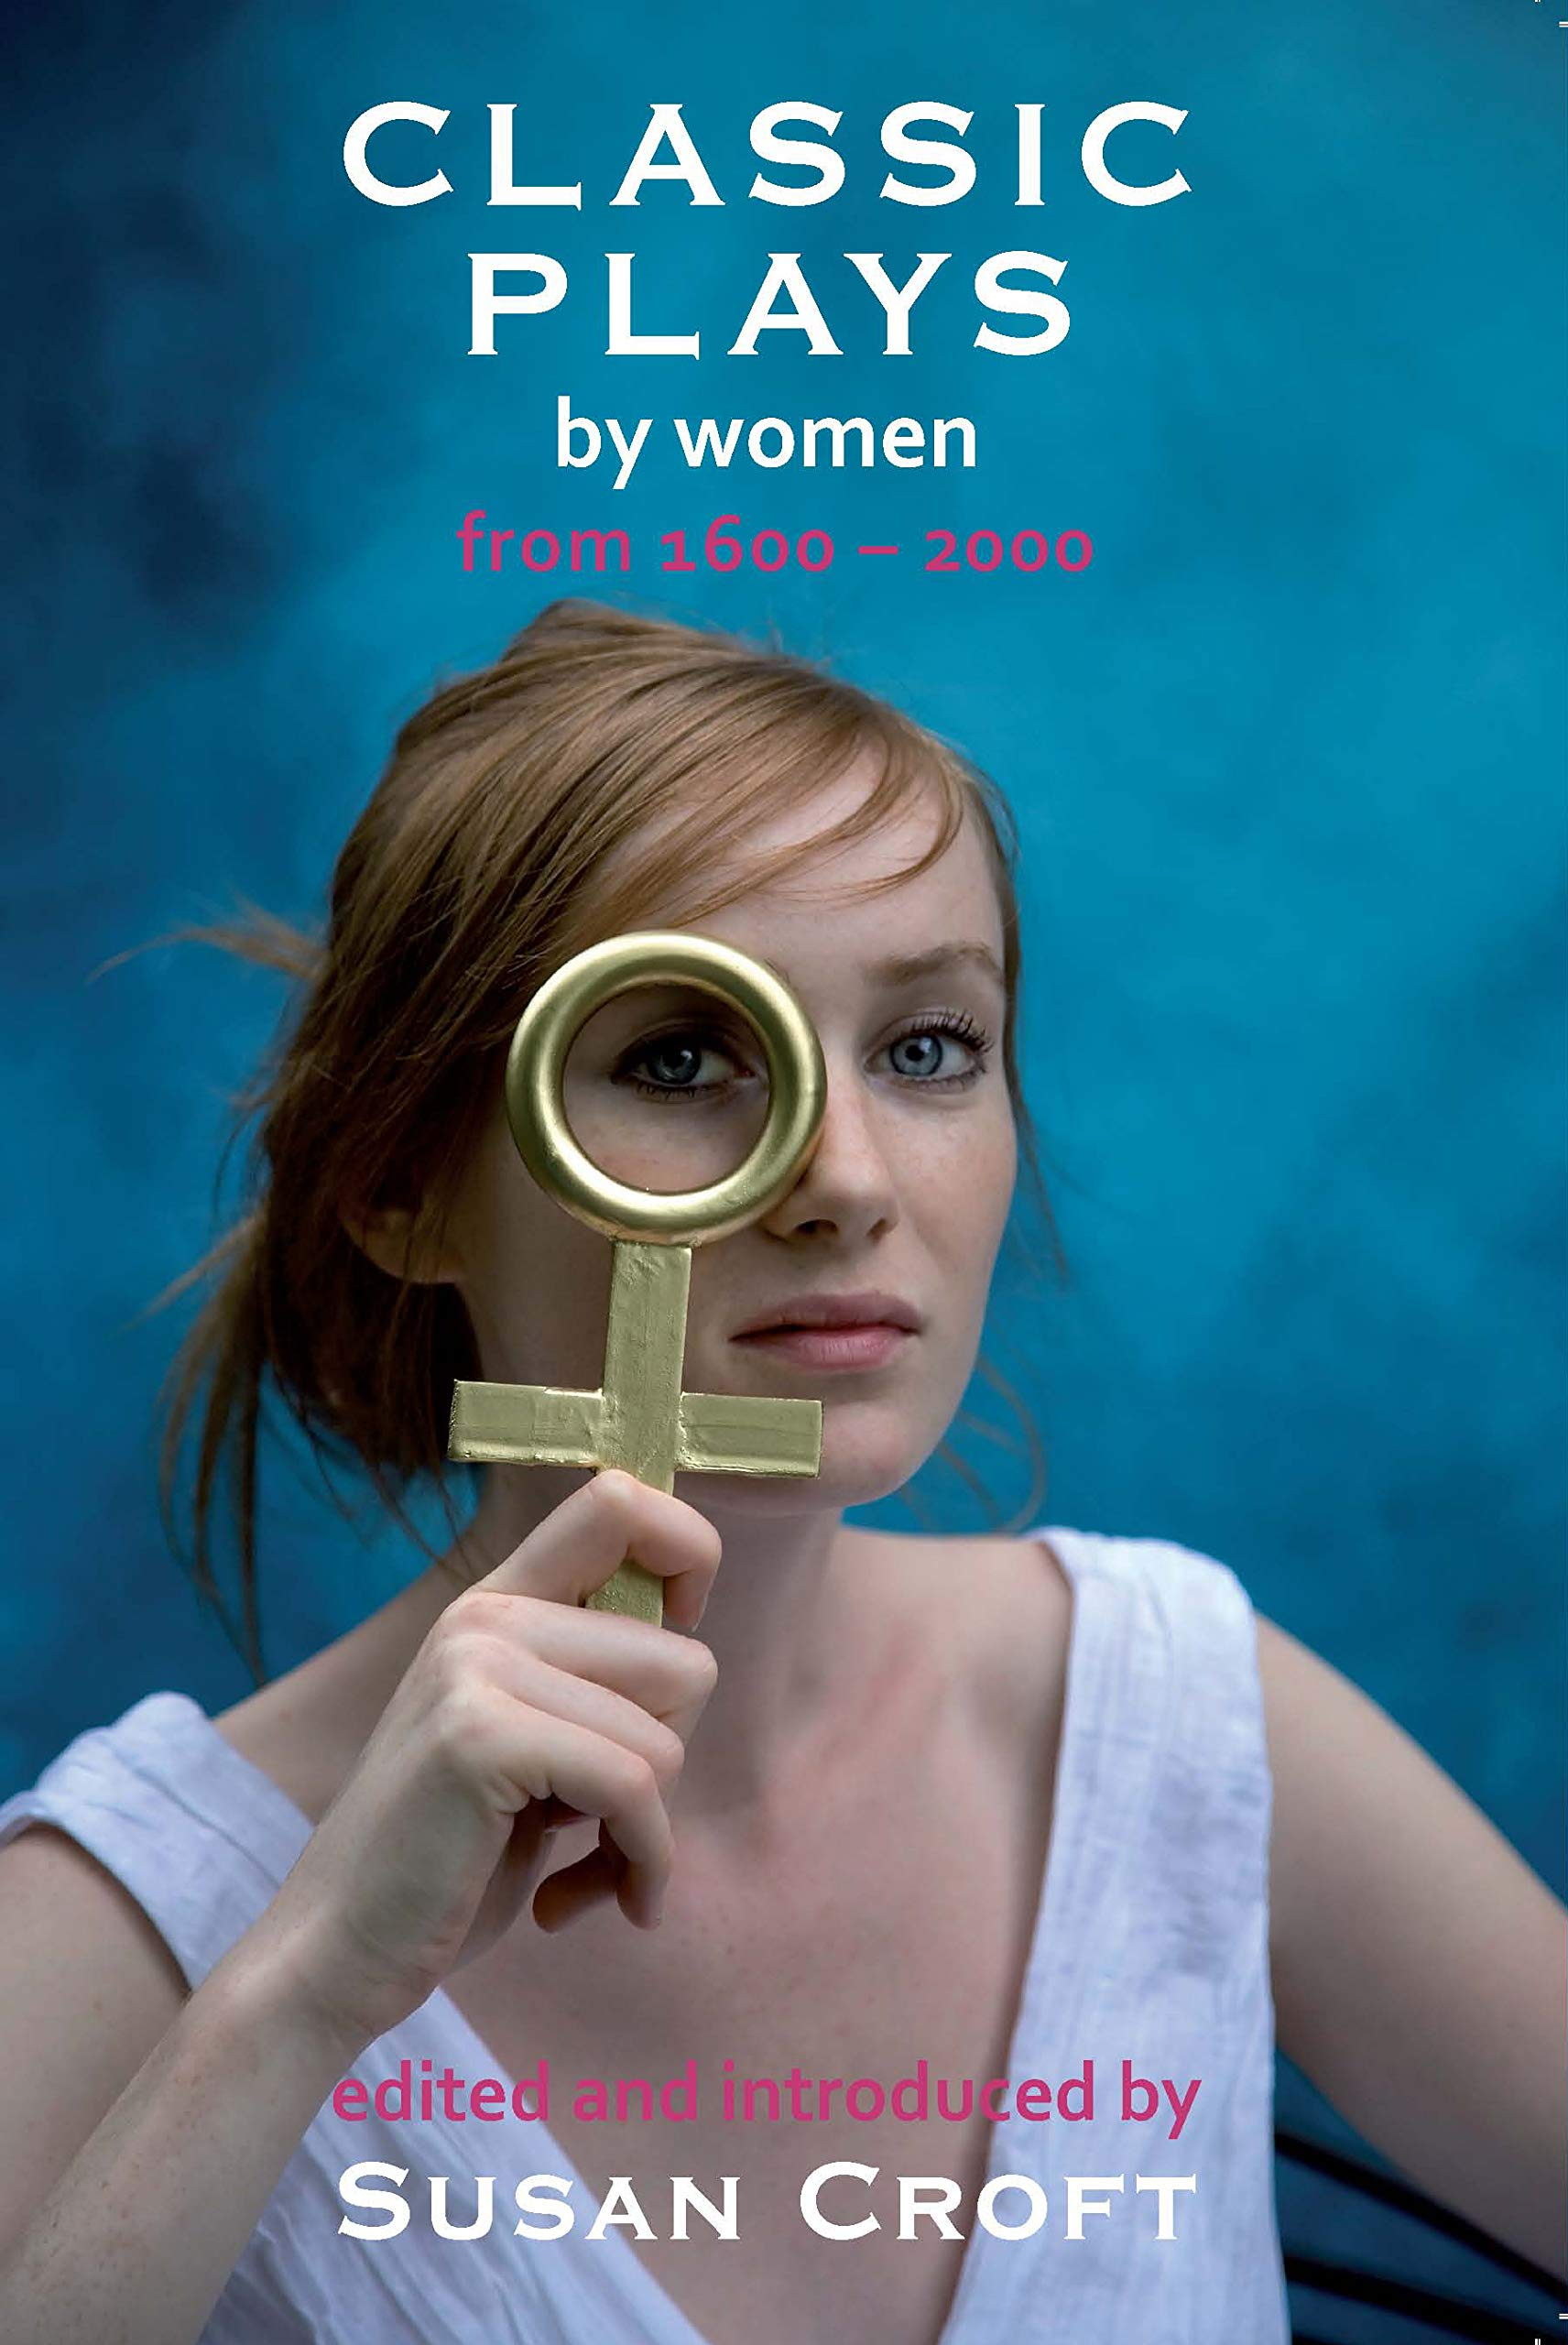 Classic Plays by Women: From 1600 to 2000 (Aurora Classic Plays) (English Edition)